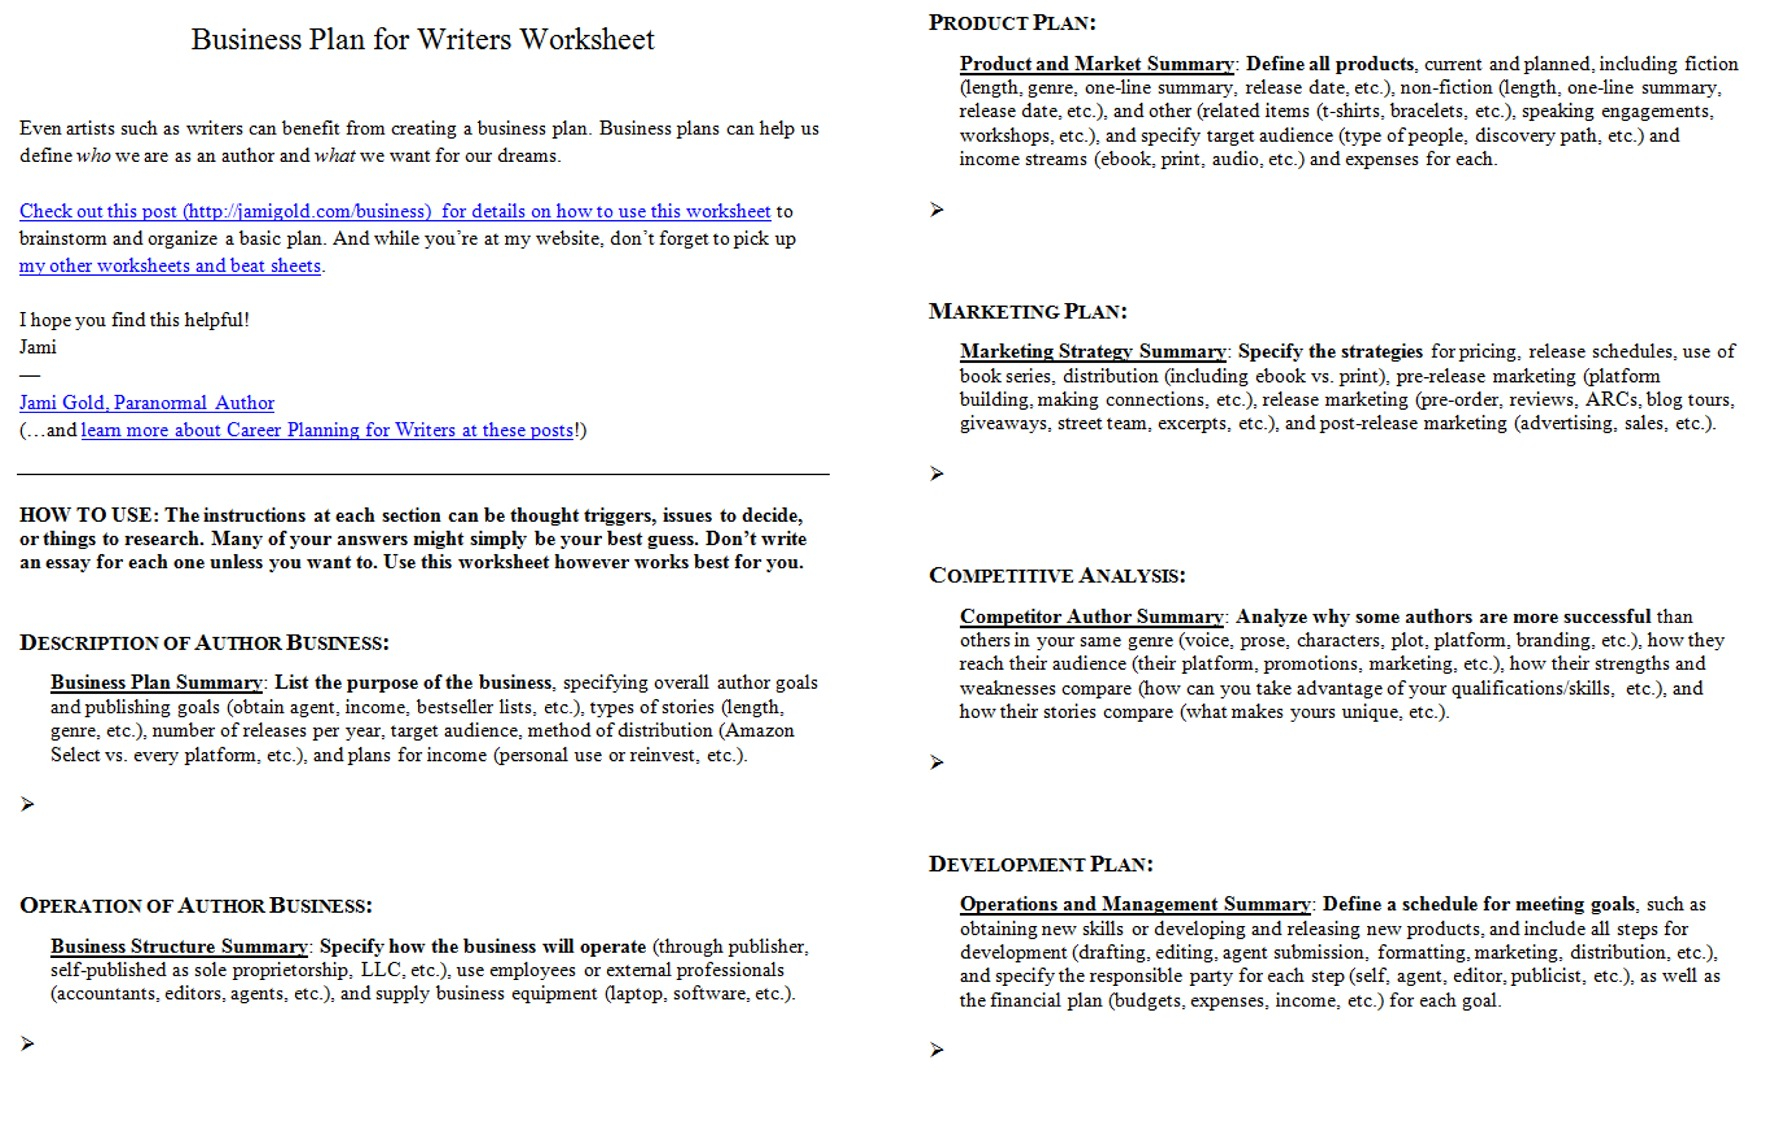 Weirdmailus  Nice Worksheets For Writers  Jami Gold Paranormal Author With Goodlooking Screen Shot Of Both Pages Of The Business Plan For Writers Worksheet With Breathtaking Transformation Reflection Worksheet Also Tax Calculation Worksheet In Addition Free Math Worksheets Th Grade And Math  Worksheets As Well As Rounding To Nearest Hundred Worksheet Additionally Simile And Metaphor Worksheet Th Grade From Jamigoldcom With Weirdmailus  Goodlooking Worksheets For Writers  Jami Gold Paranormal Author With Breathtaking Screen Shot Of Both Pages Of The Business Plan For Writers Worksheet And Nice Transformation Reflection Worksheet Also Tax Calculation Worksheet In Addition Free Math Worksheets Th Grade From Jamigoldcom